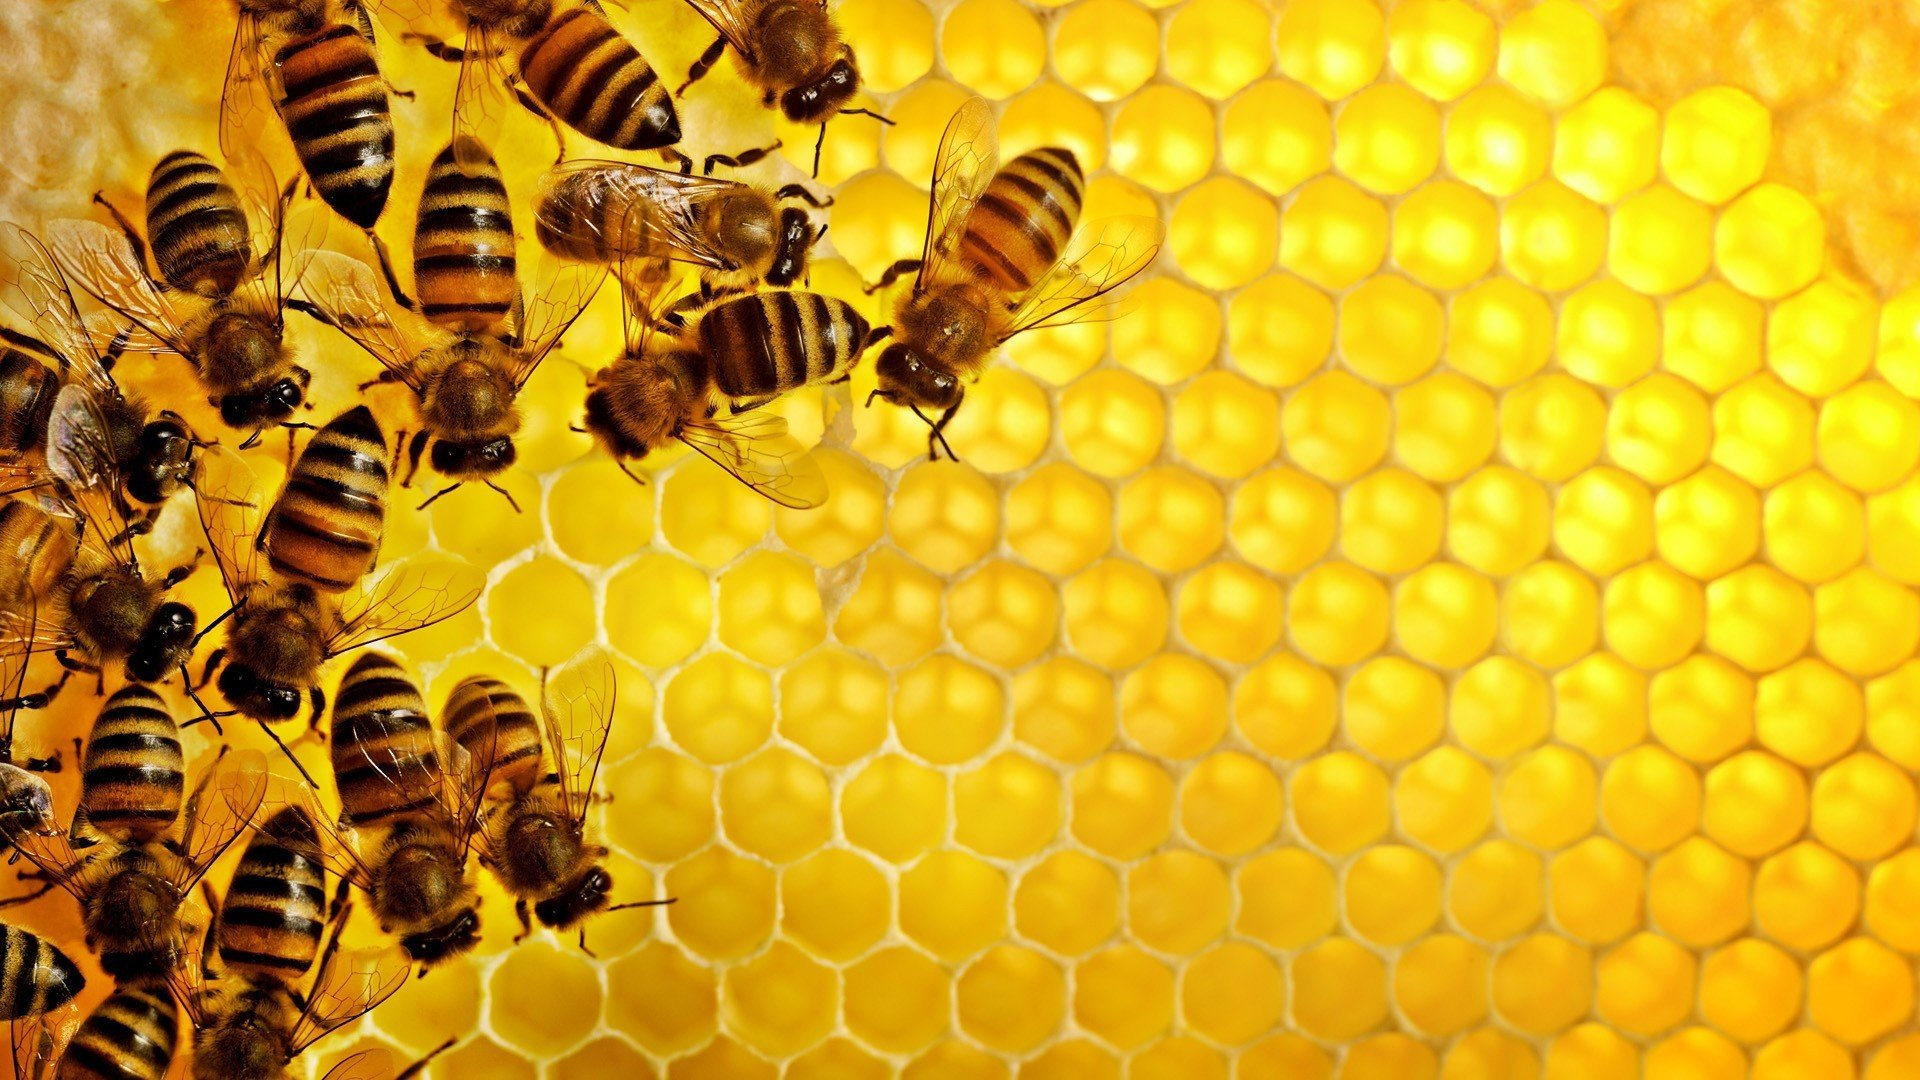 pattern Texture Geometry Hexagon Nature Insect Bees Honey 1920x1080